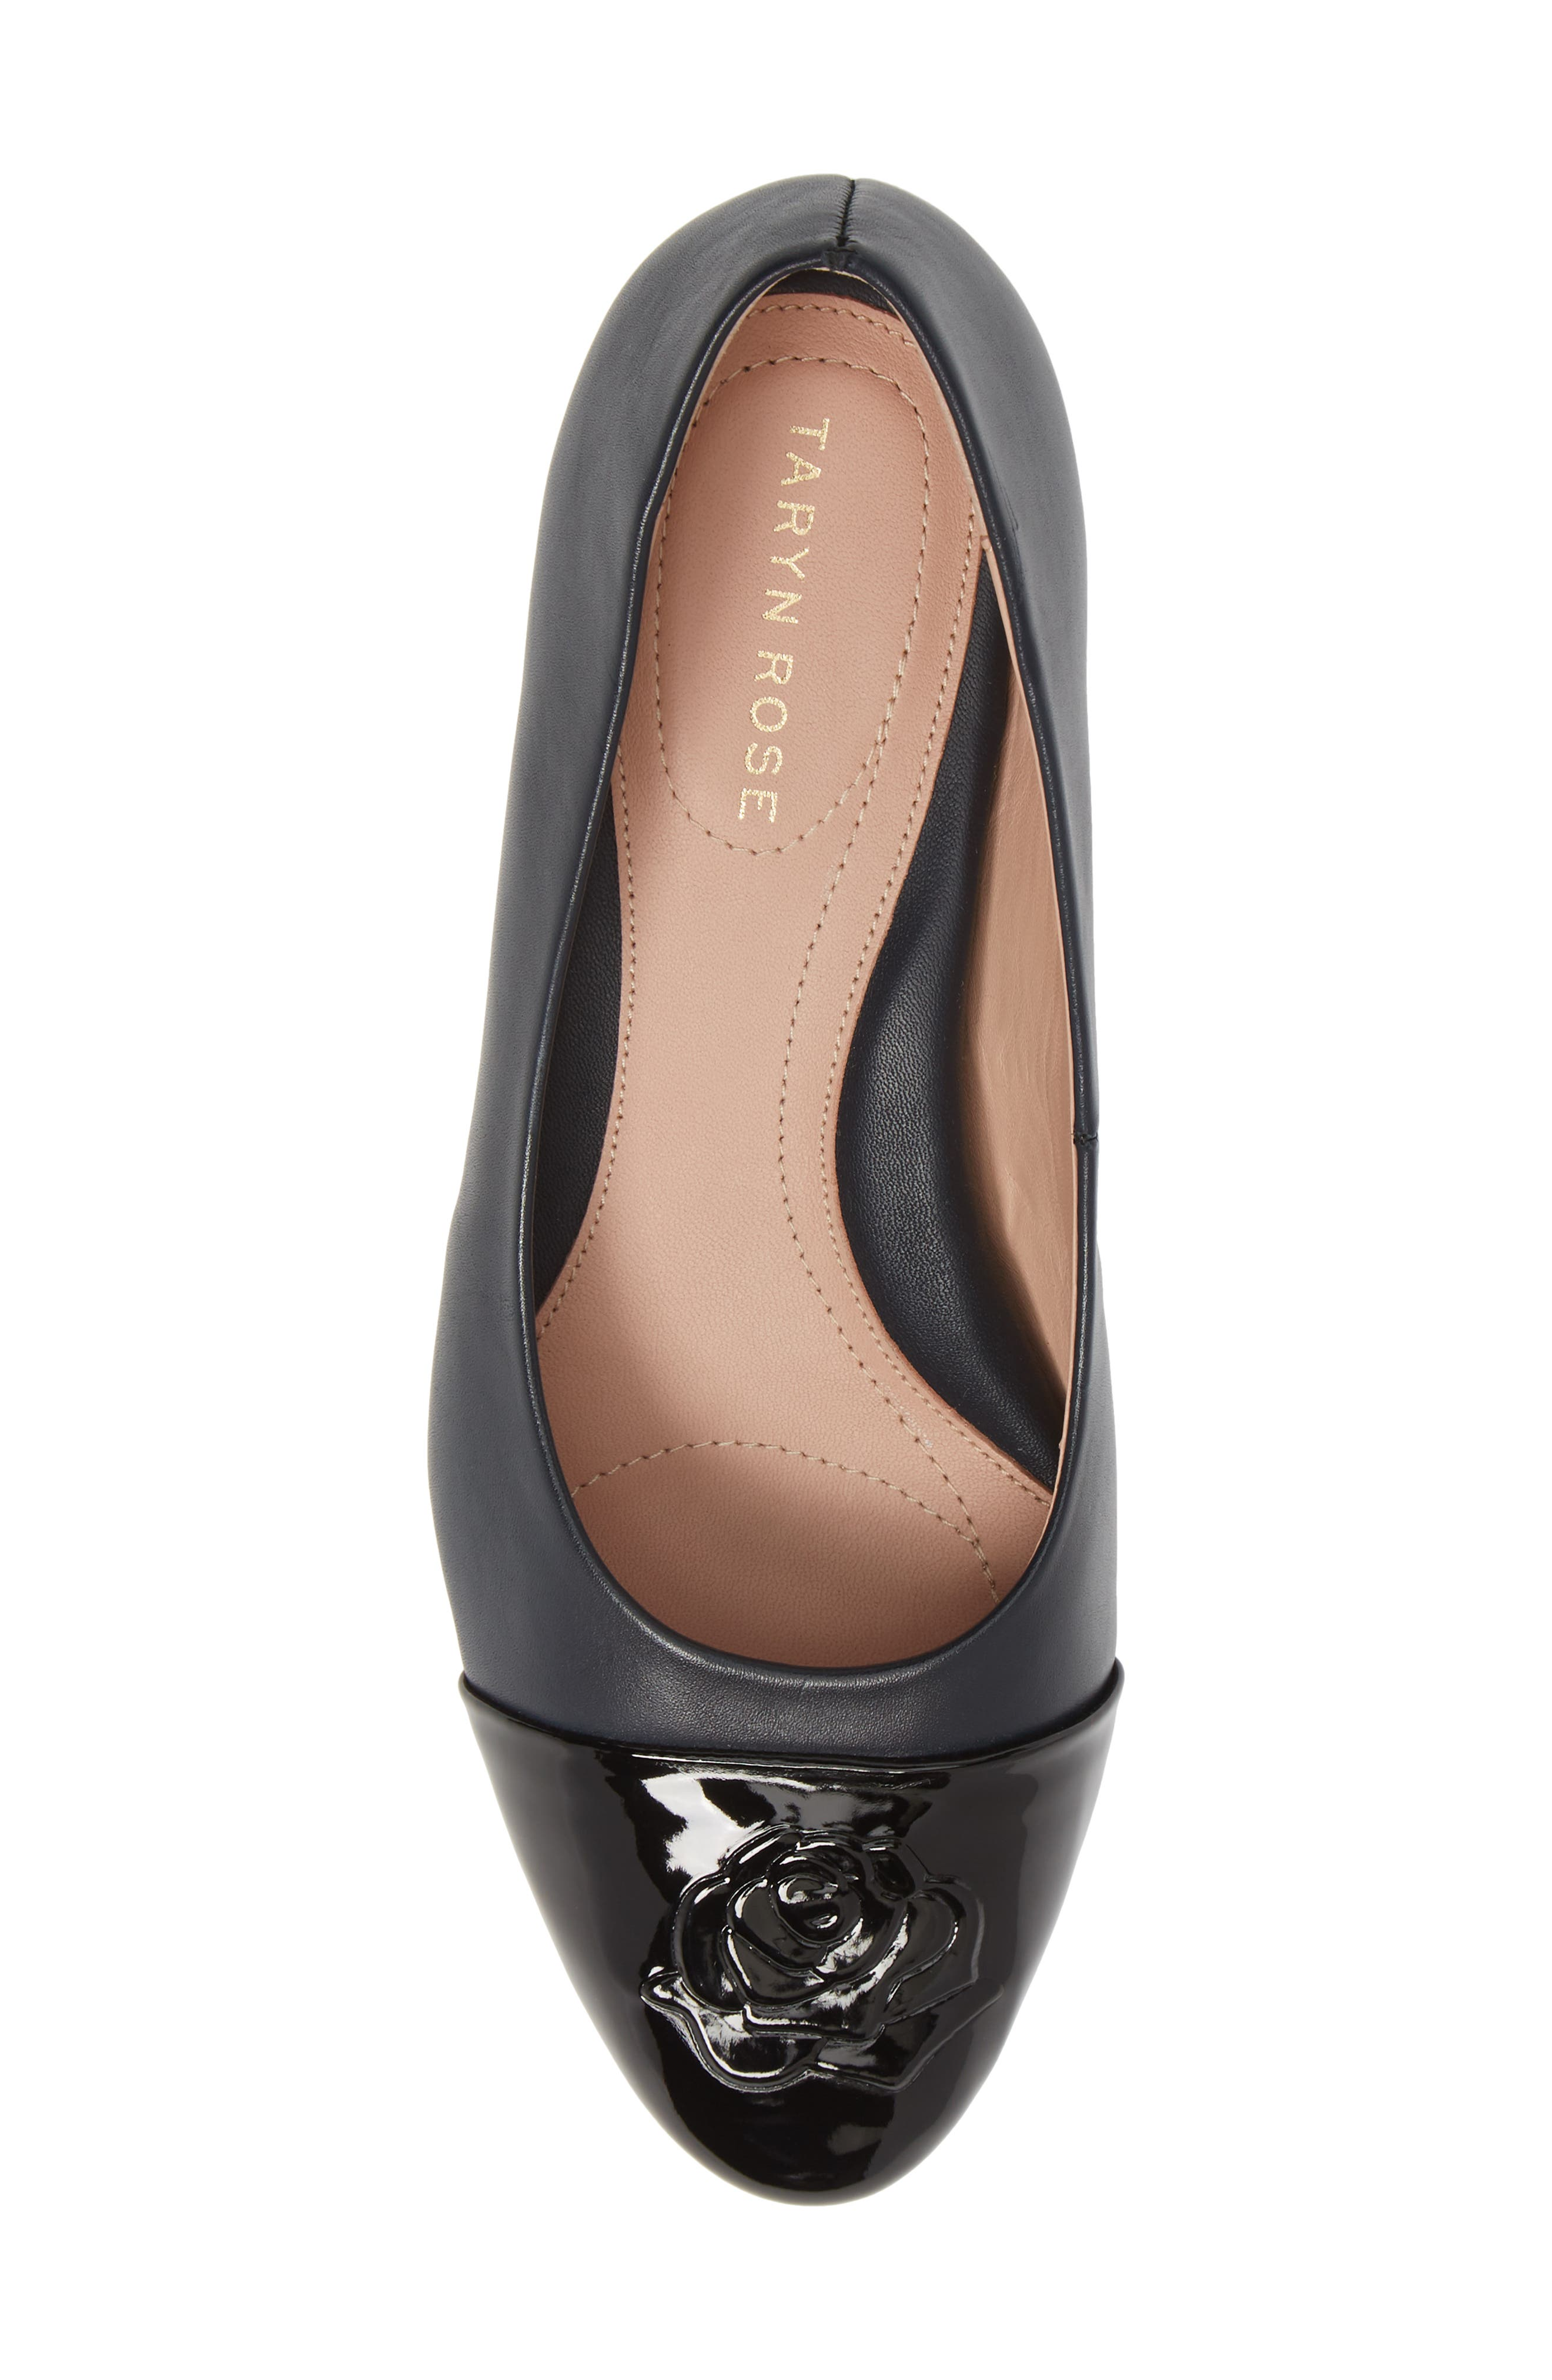 TARYN ROSE, Babe Cap Toe Pump, Alternate thumbnail 5, color, MIDNIGHT/ BLACK LEATHER